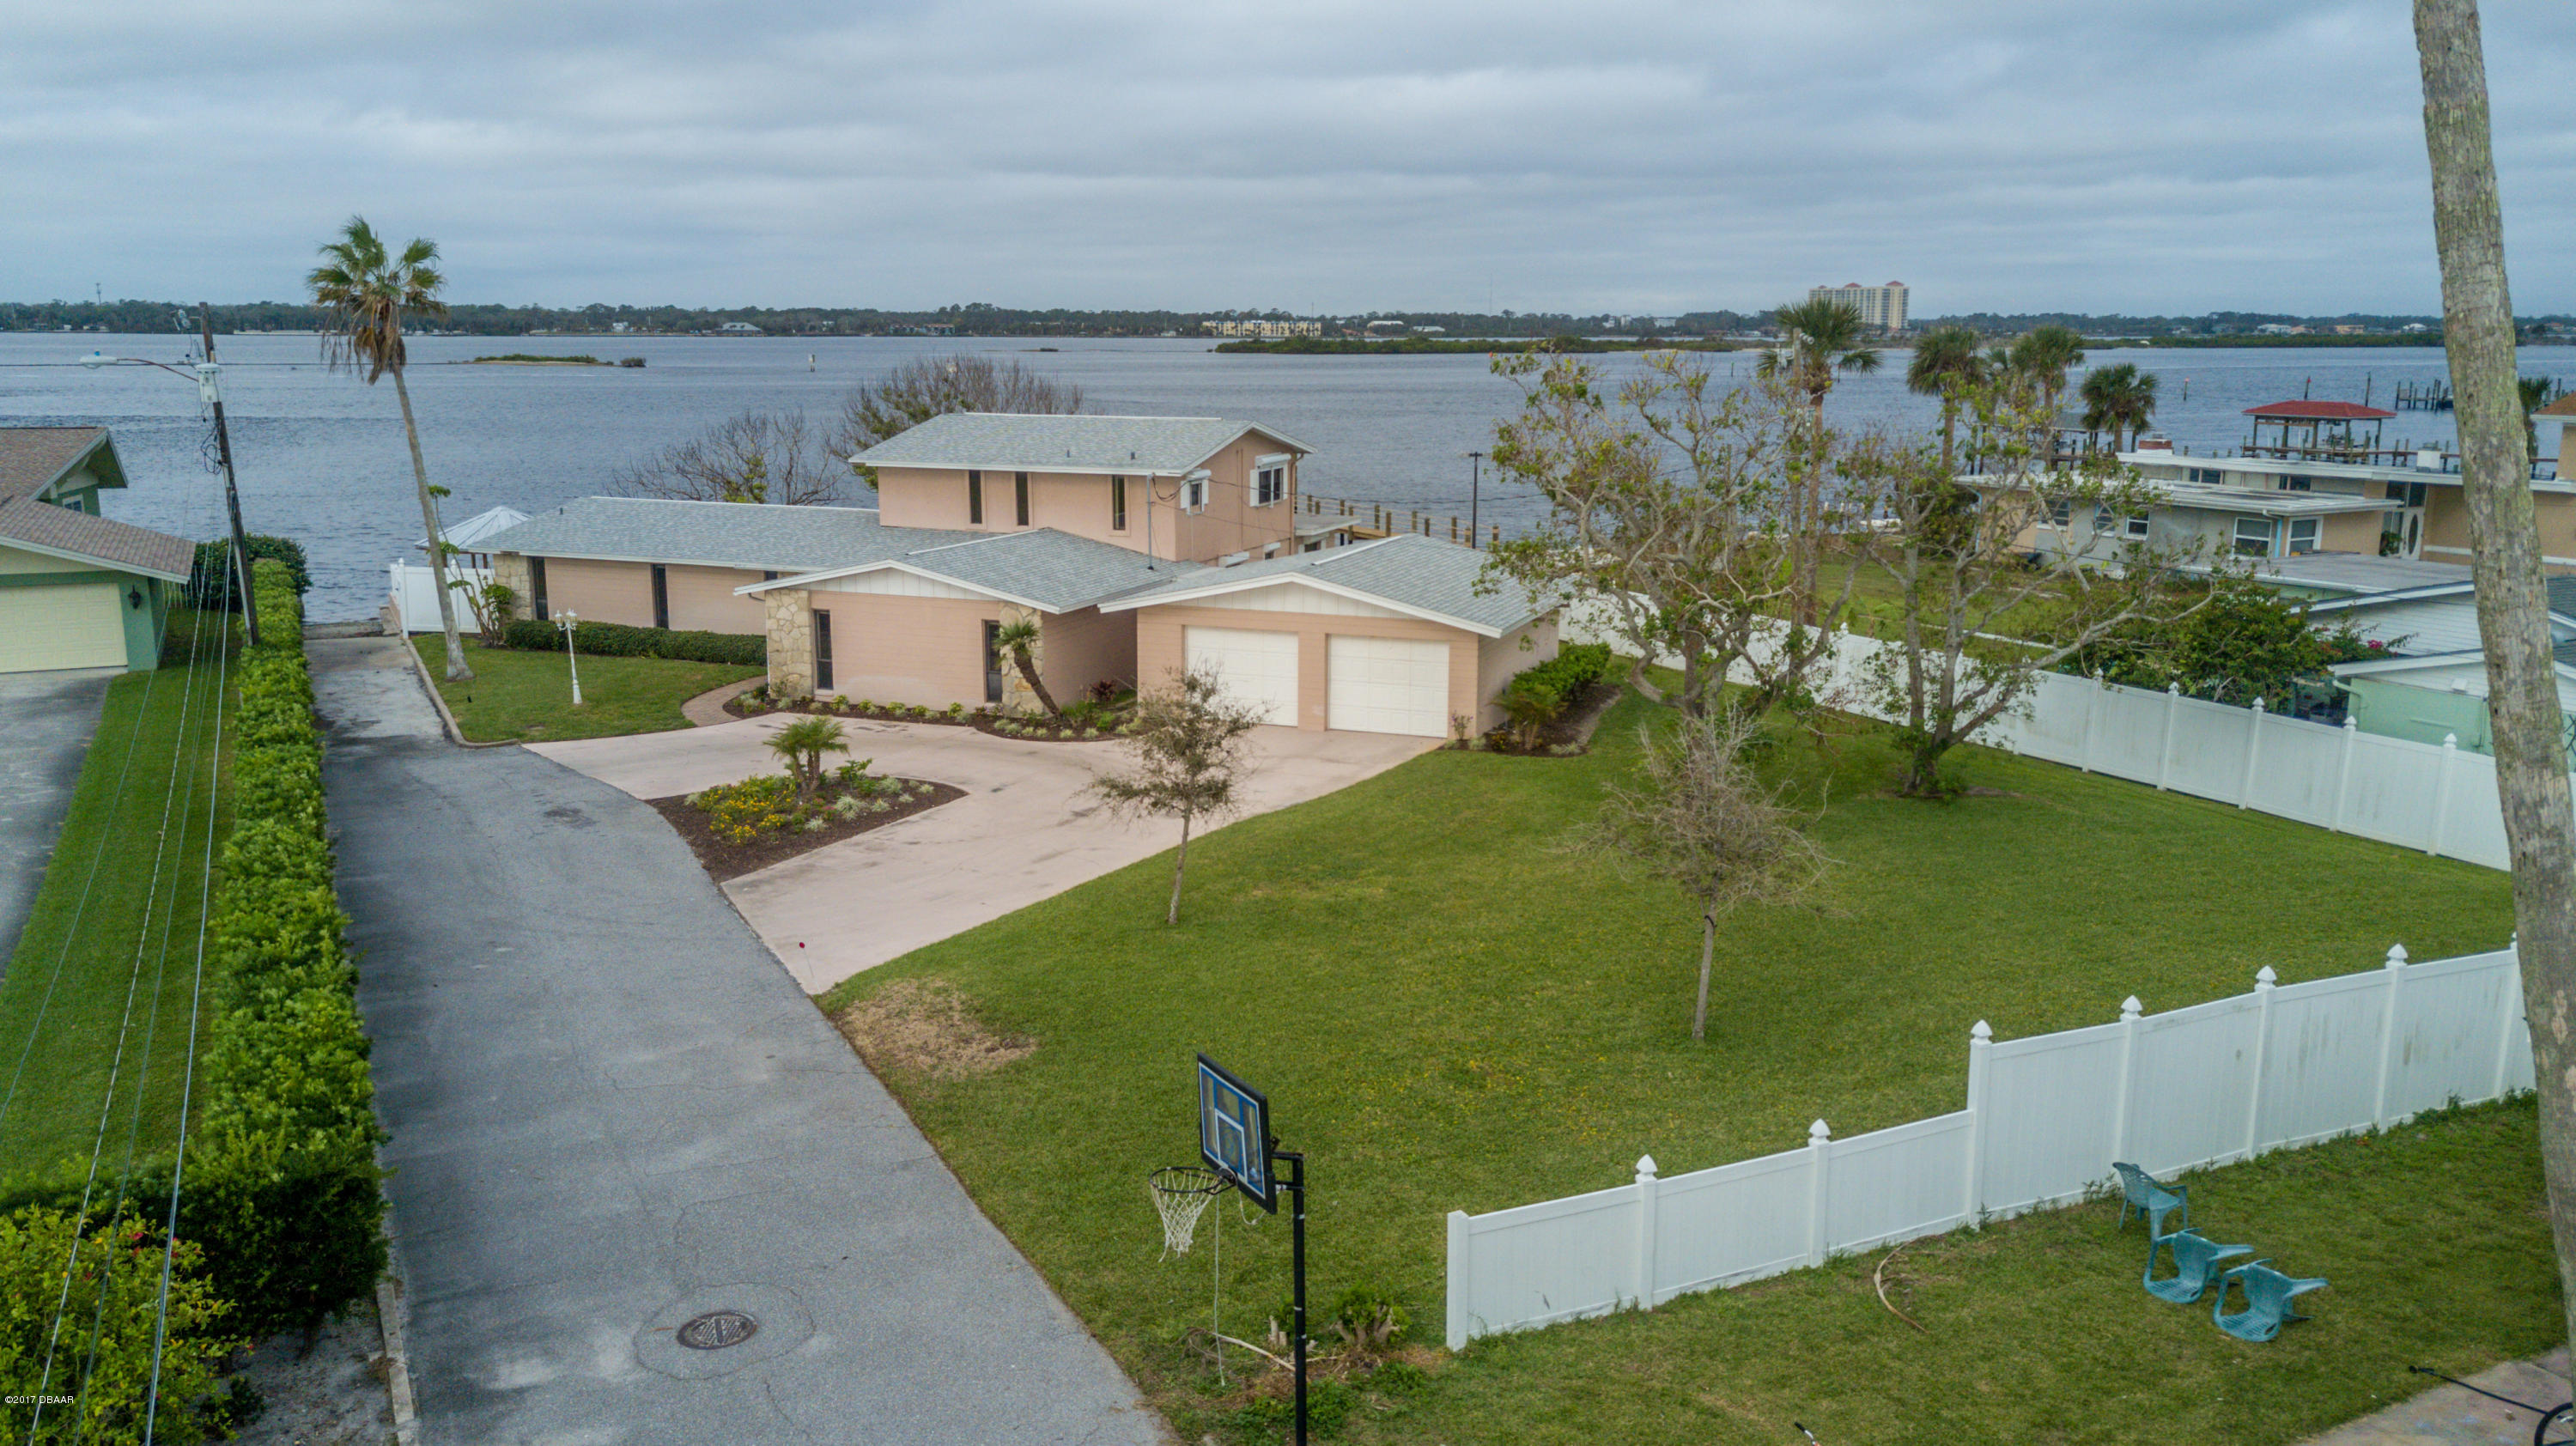 8 Rudy Lane, Port Orange, Florida